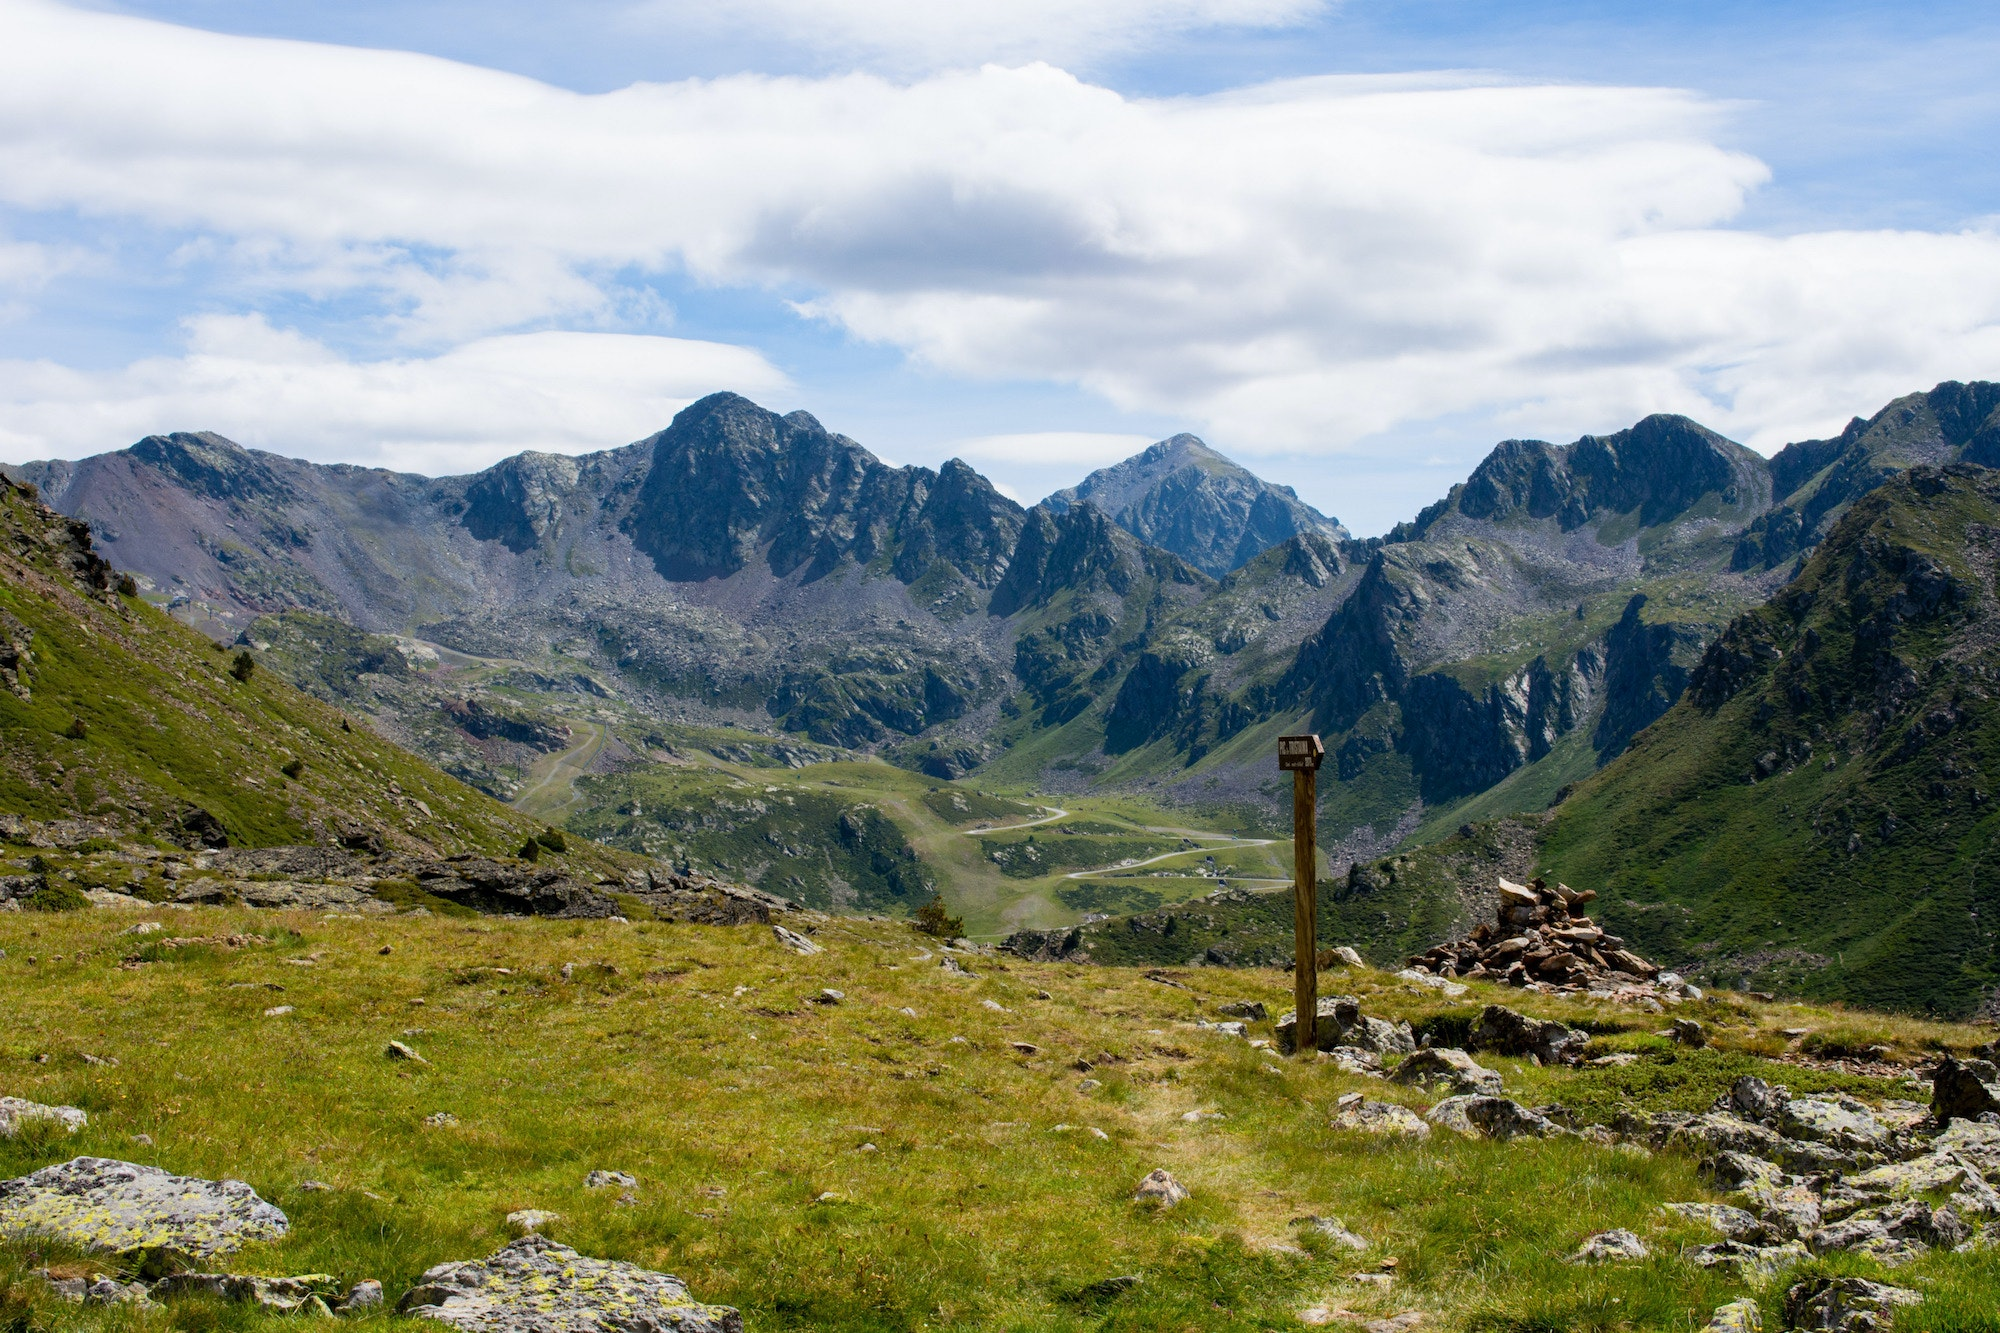 Andorra is an independent principality located between France and Spain in the Pyrenees mountains.